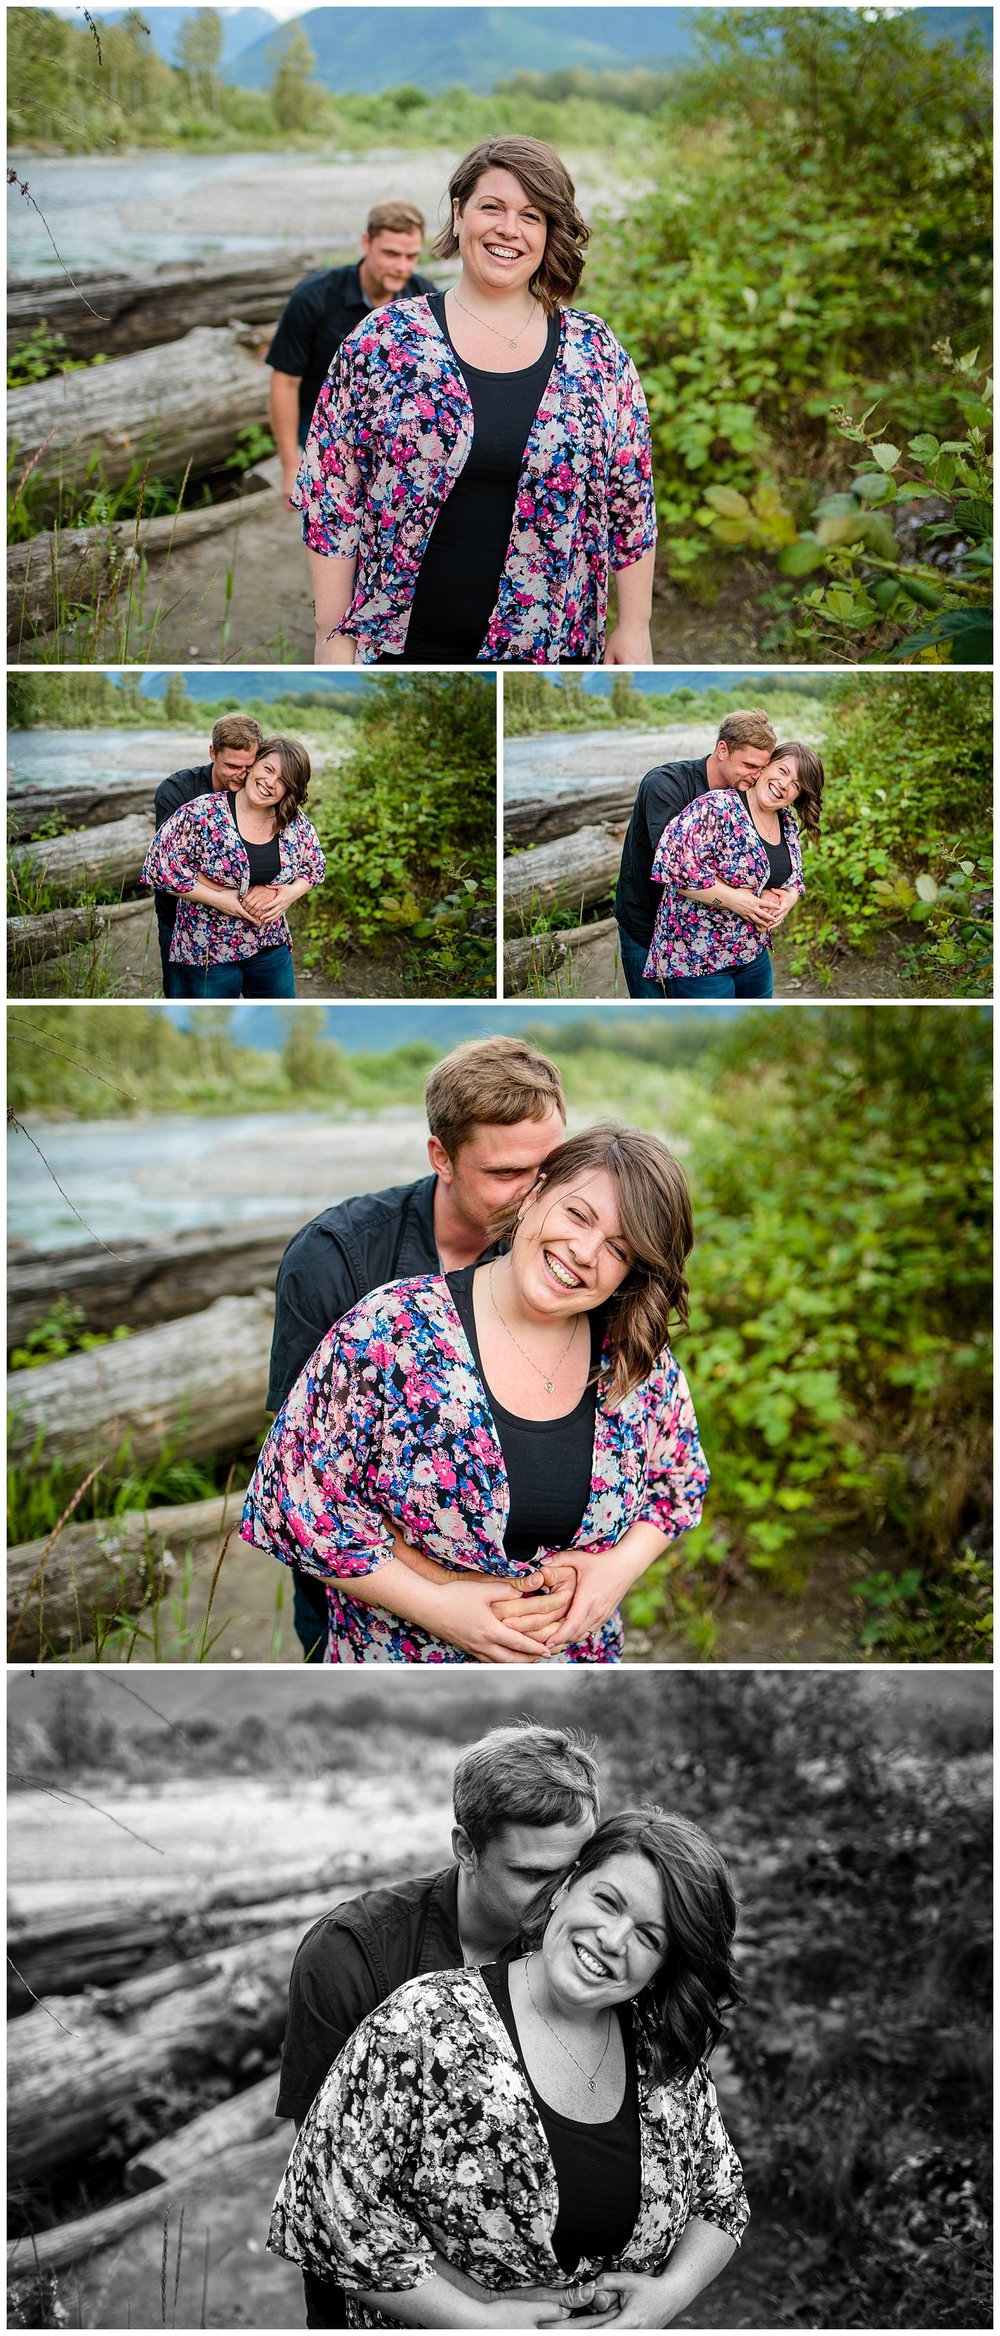 Chilliwack River Bank Mountain Chilliwack Fun  Engagement Photographer 078_collage.jpg